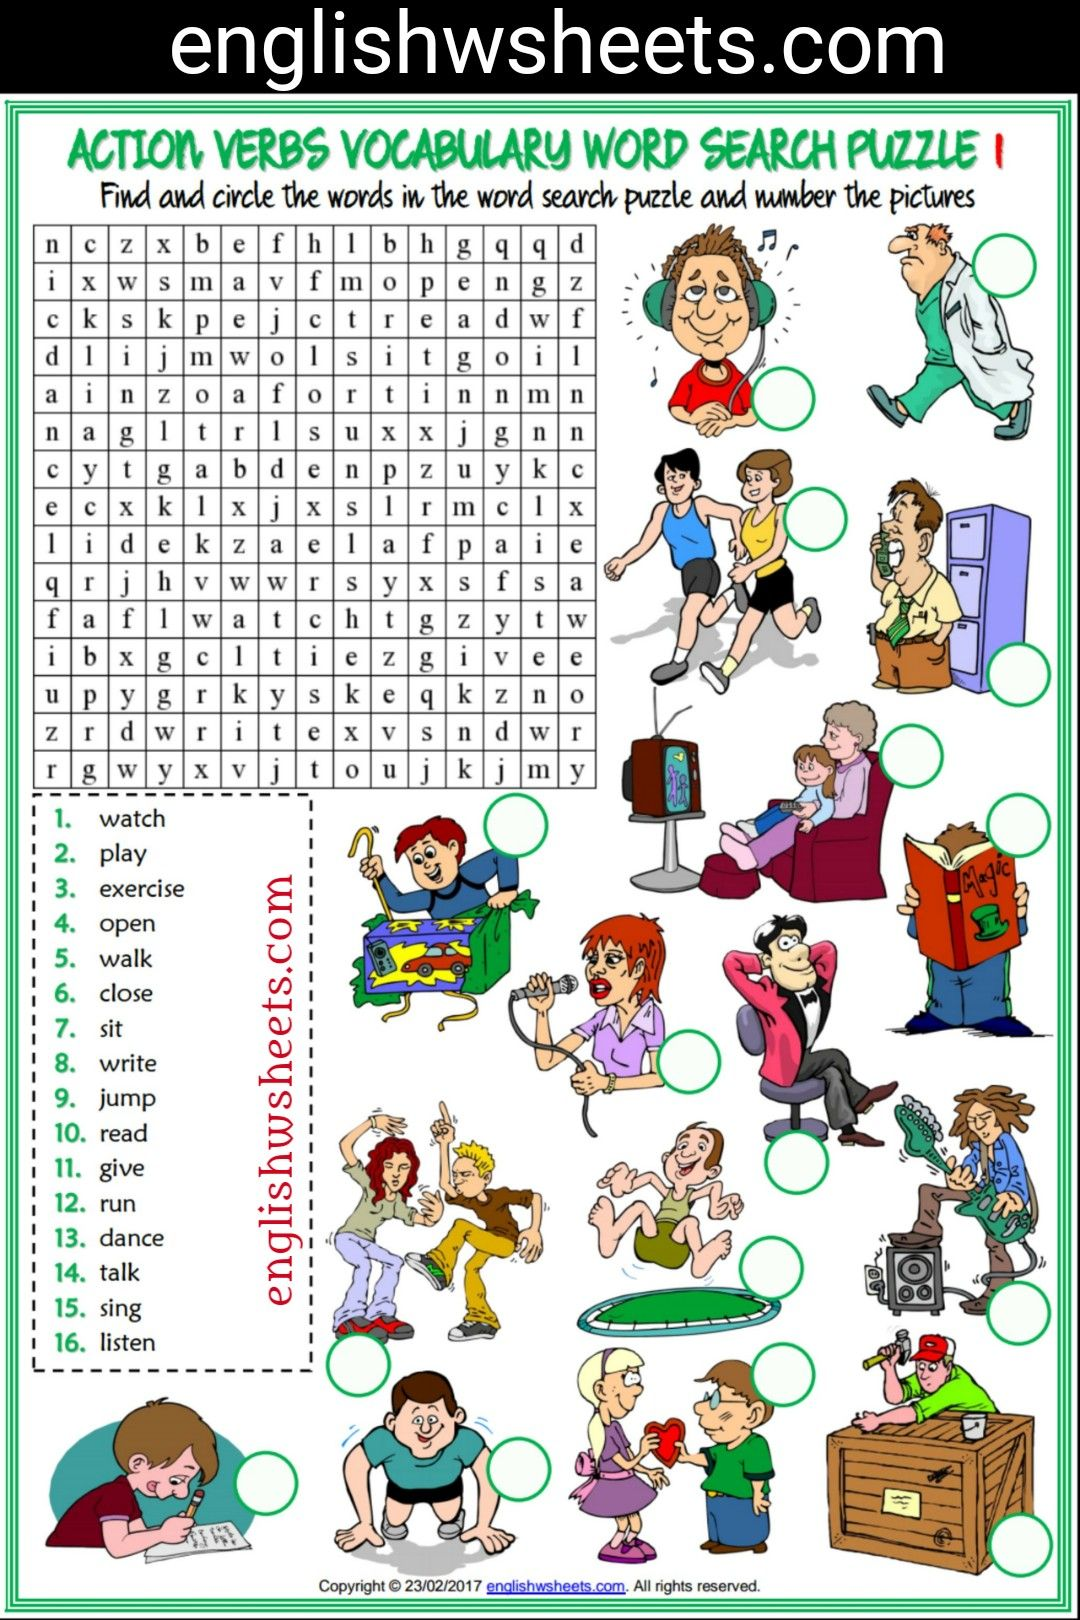 Action Verbs Esl Printable Word Search Puzzle Worksheets For Kids